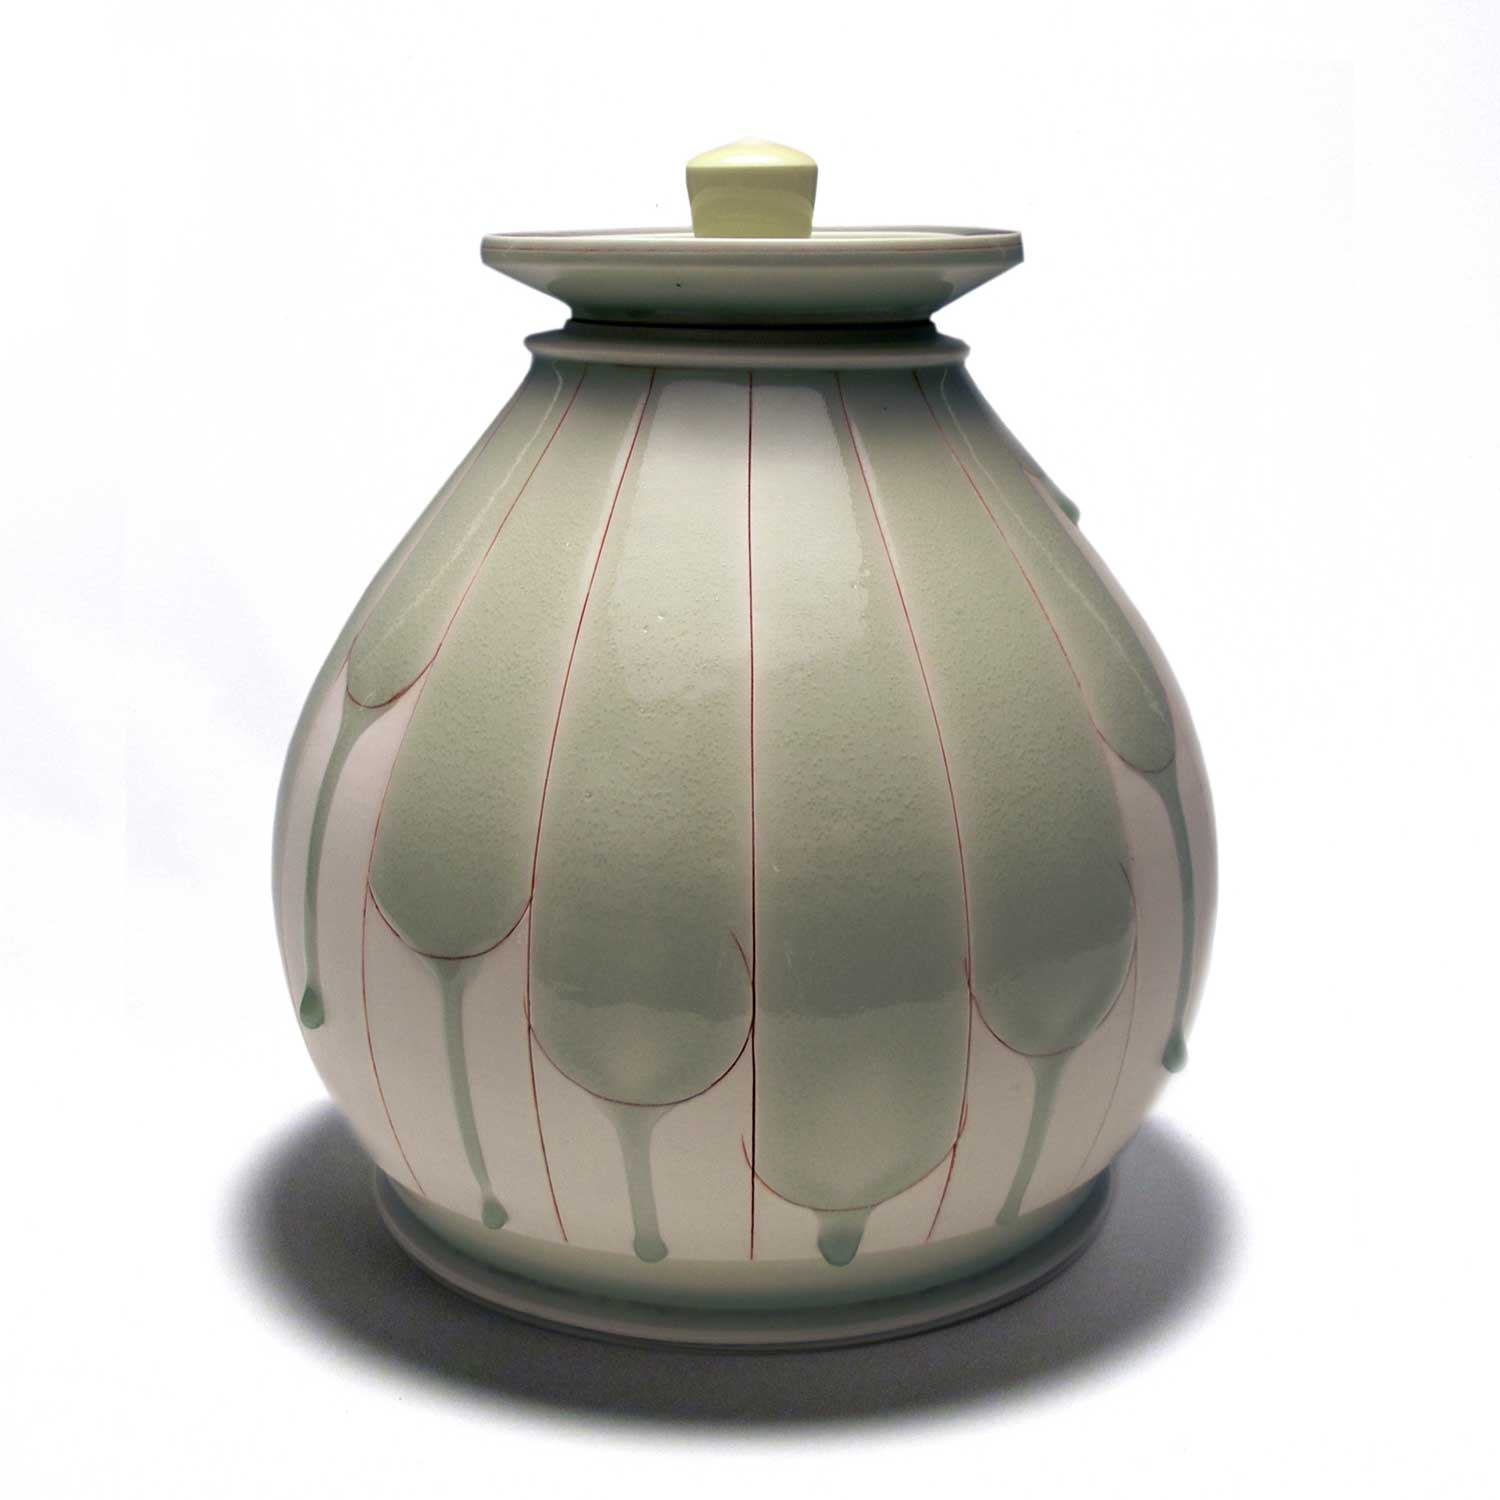 Shawn Spangler ceramic pot titled Kingdom of Koryo